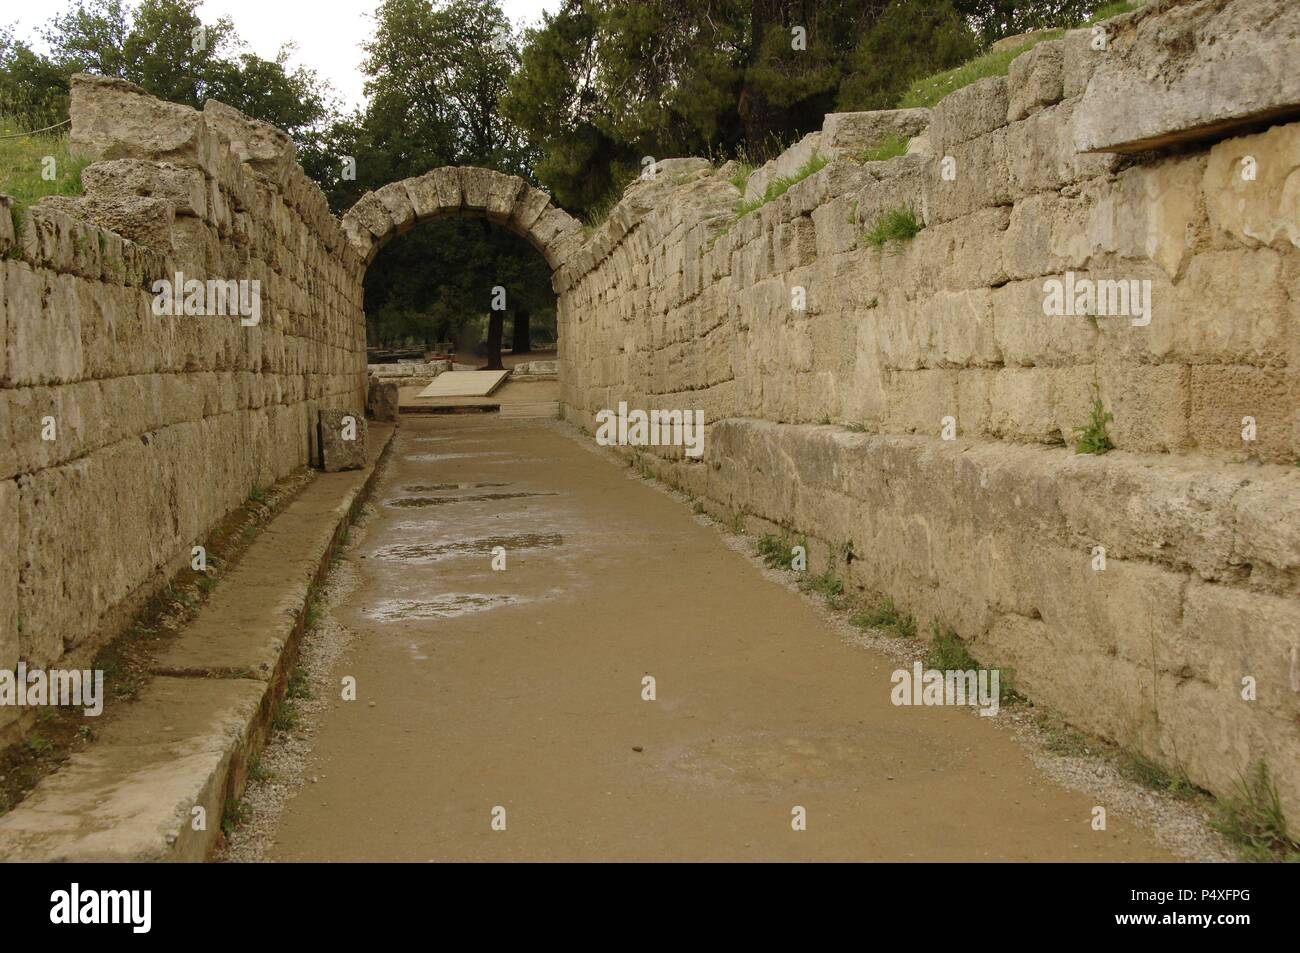 Greek Art. Sanctuary of Olympia. Olympic stadium.  The vaulted tunnel leading out of the stadium. Hellenistic period. Elis. Peloponesse. Greece. - Stock Image